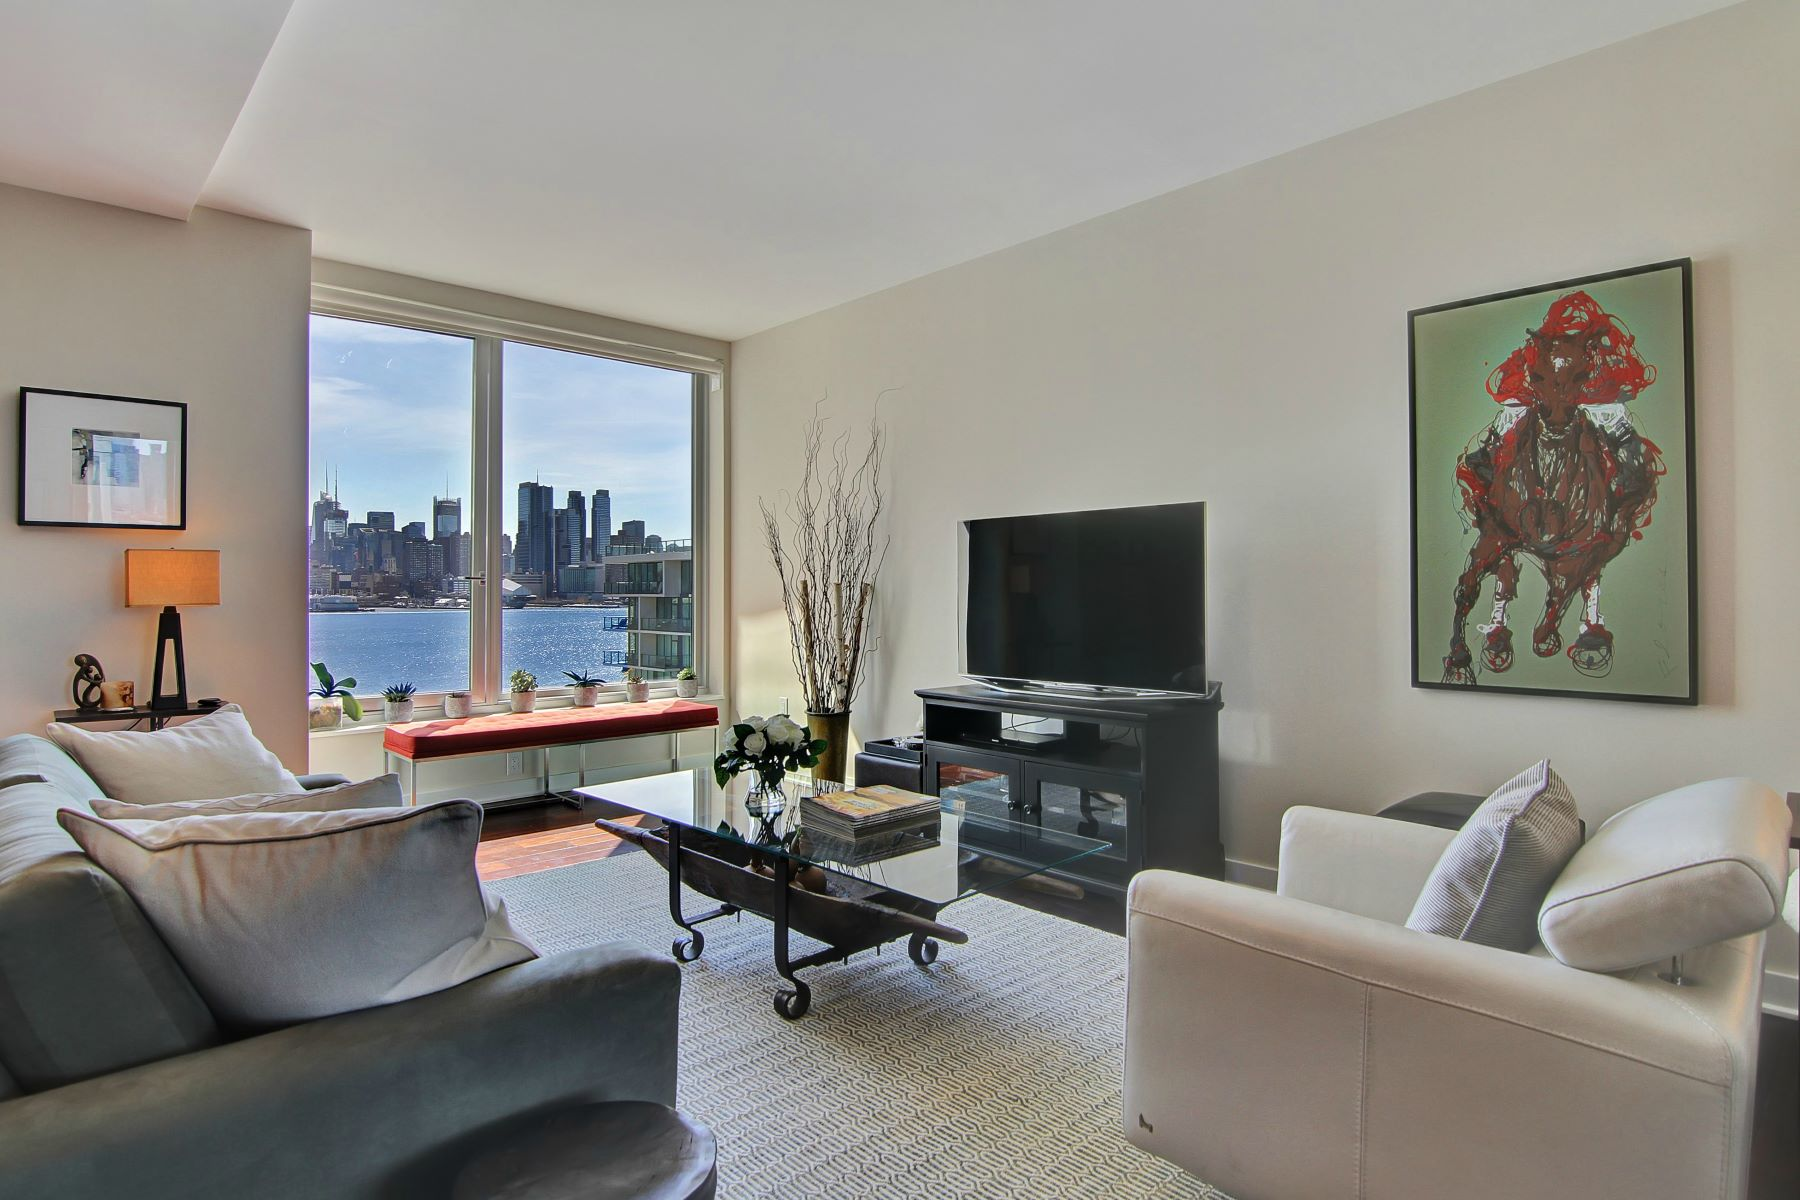 Condominium for Sale at The Avenue Collection 1000 Ave at Port Imperial #615 Weehawken, New Jersey 07086 United States